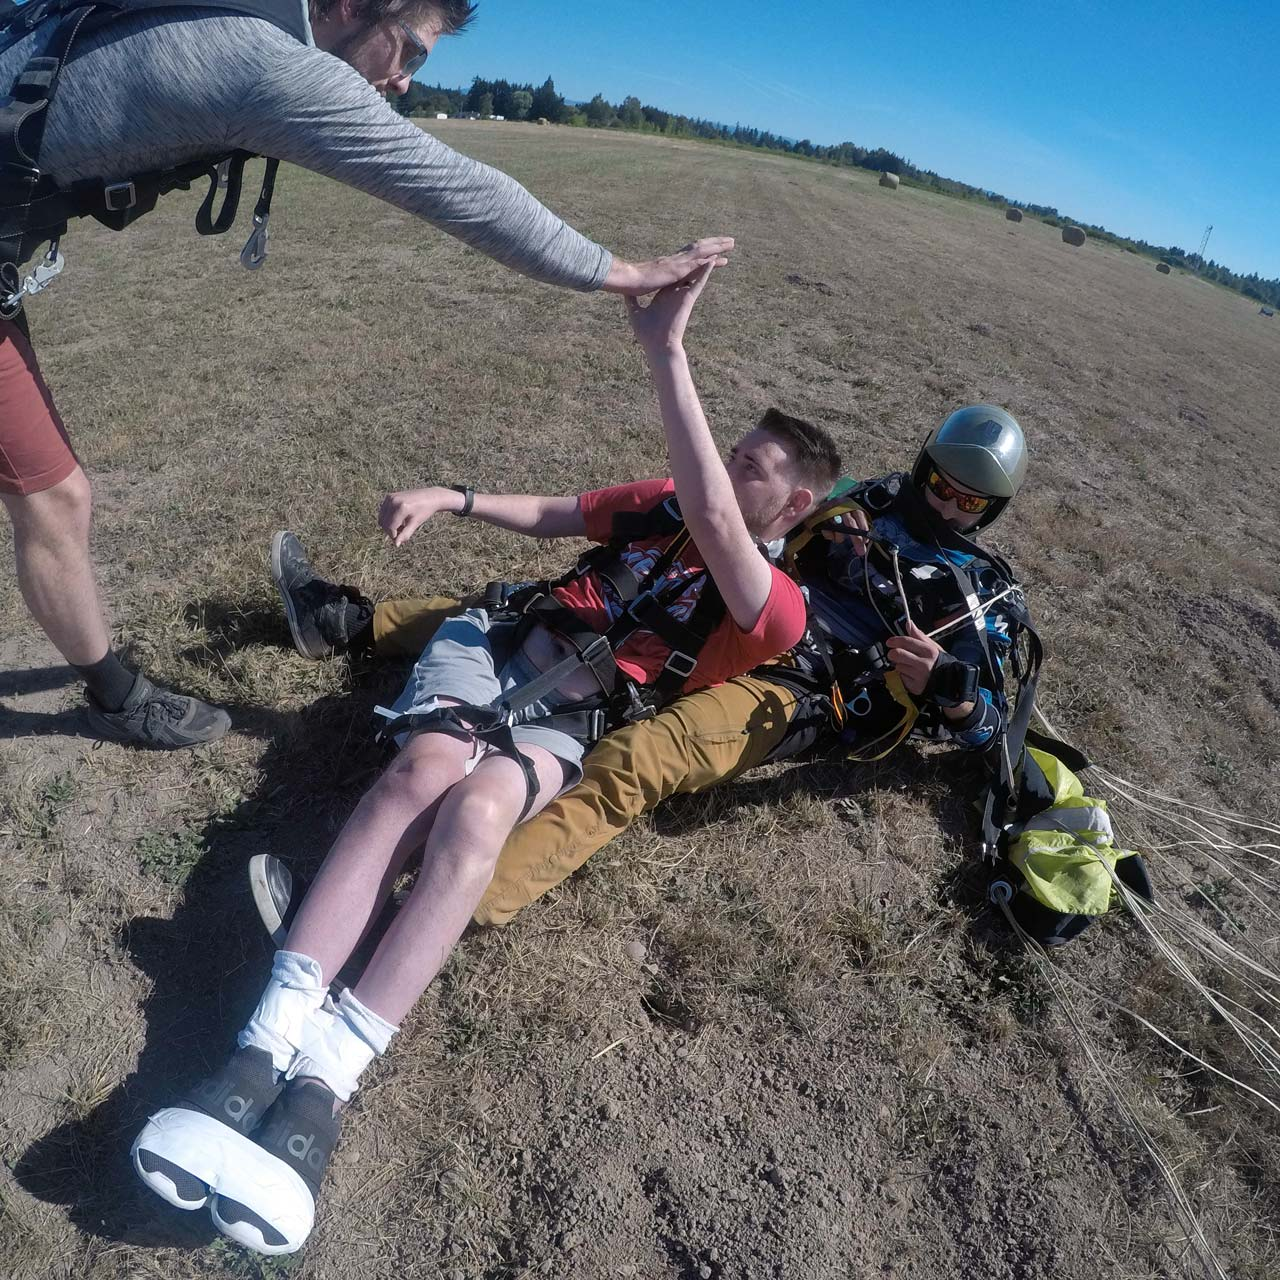 Young man with disability landing after a tandem skydive at PNW Skydiving Center in Oregon